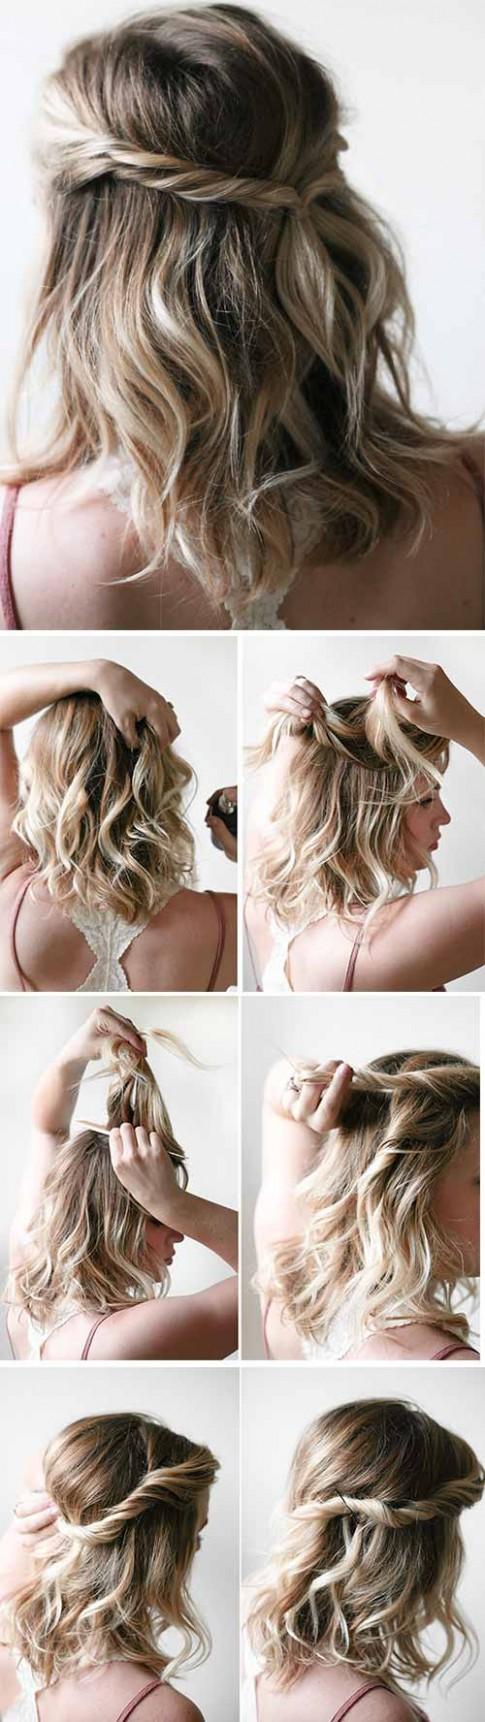 10 Incredible DIY Short Hairstyles A Step By Step Guide Fun Hairstyles For Short Hair